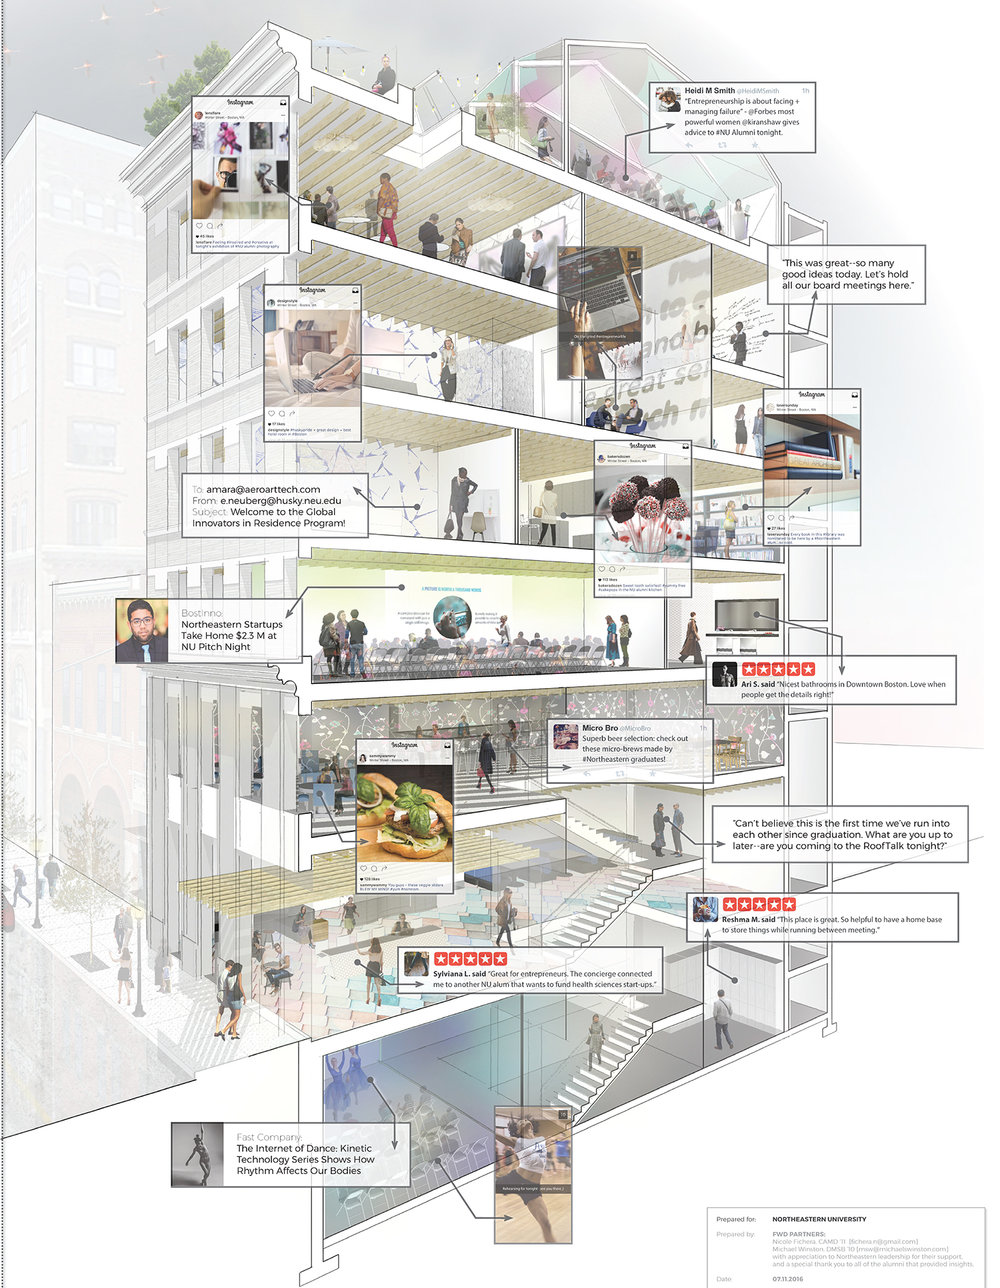 A concept design for a 21st-century alumni club: permeable instead of exclusive, multifunctional instead of formal, a hub of day-to-day activity, special events, visiting fellows and researchers, workspace for alumni, and high-end, contemporary design.    The space is shown activated, with social media mentions, news articles, Yelp reviews and more, demonstrating the digital brand potential of an activated and flexible physical space.